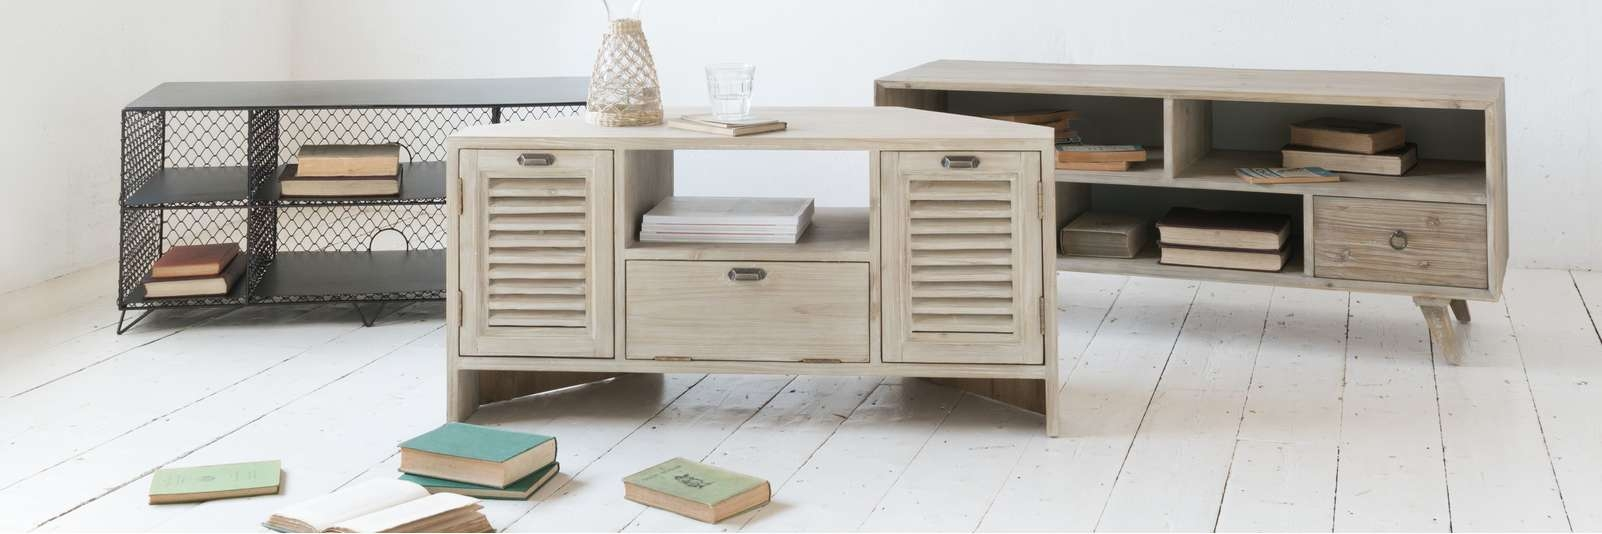 Tv Stands | Gorgeous Wooden Tv Stands | Loaf In Sideboard Tv Stands (View 16 of 20)